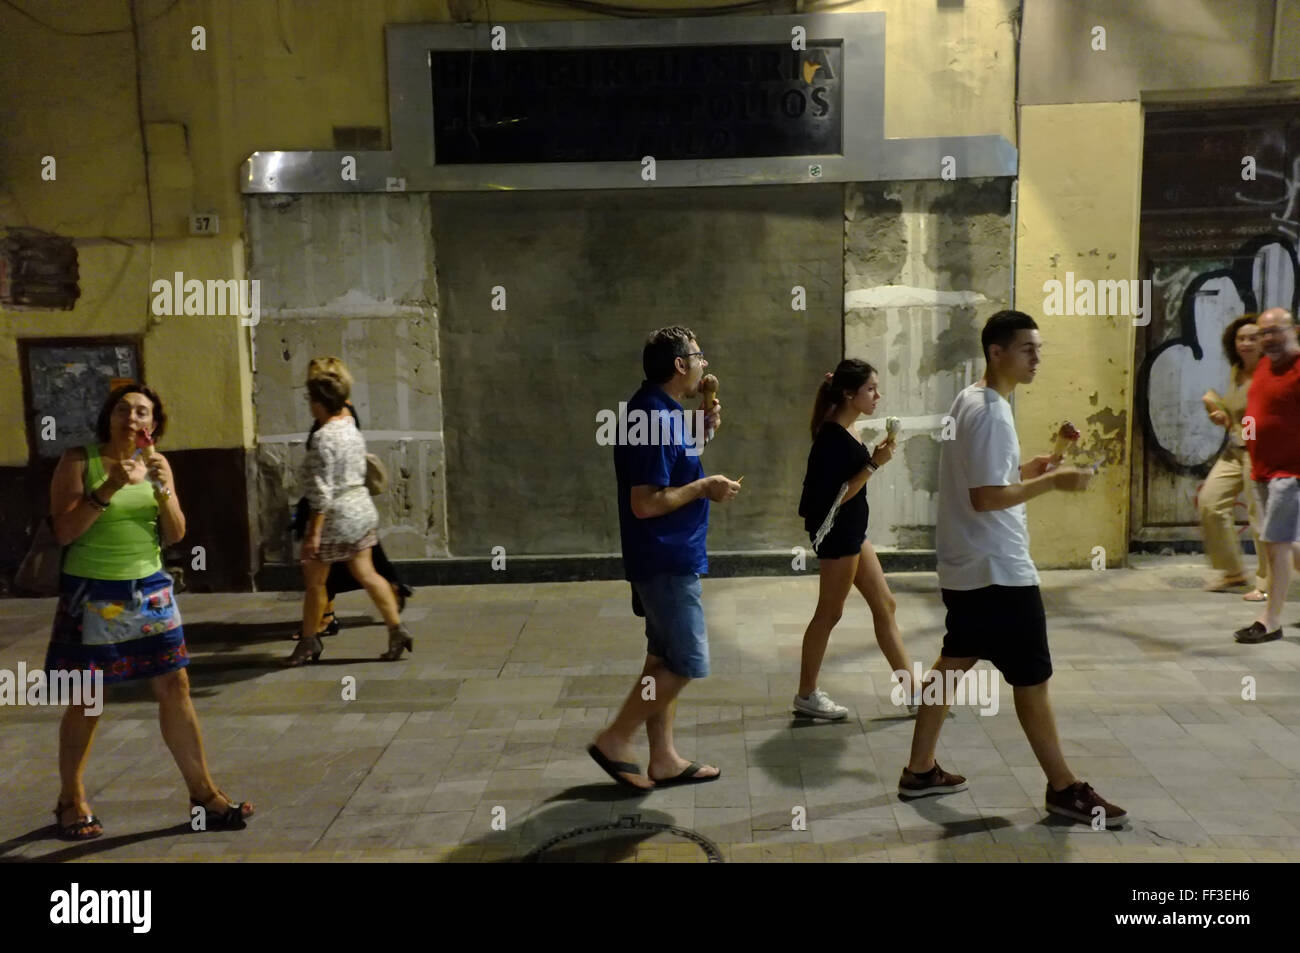 Spanish holidaymakers in Malaga, Spain eating ice creams in the evening - Stock Image